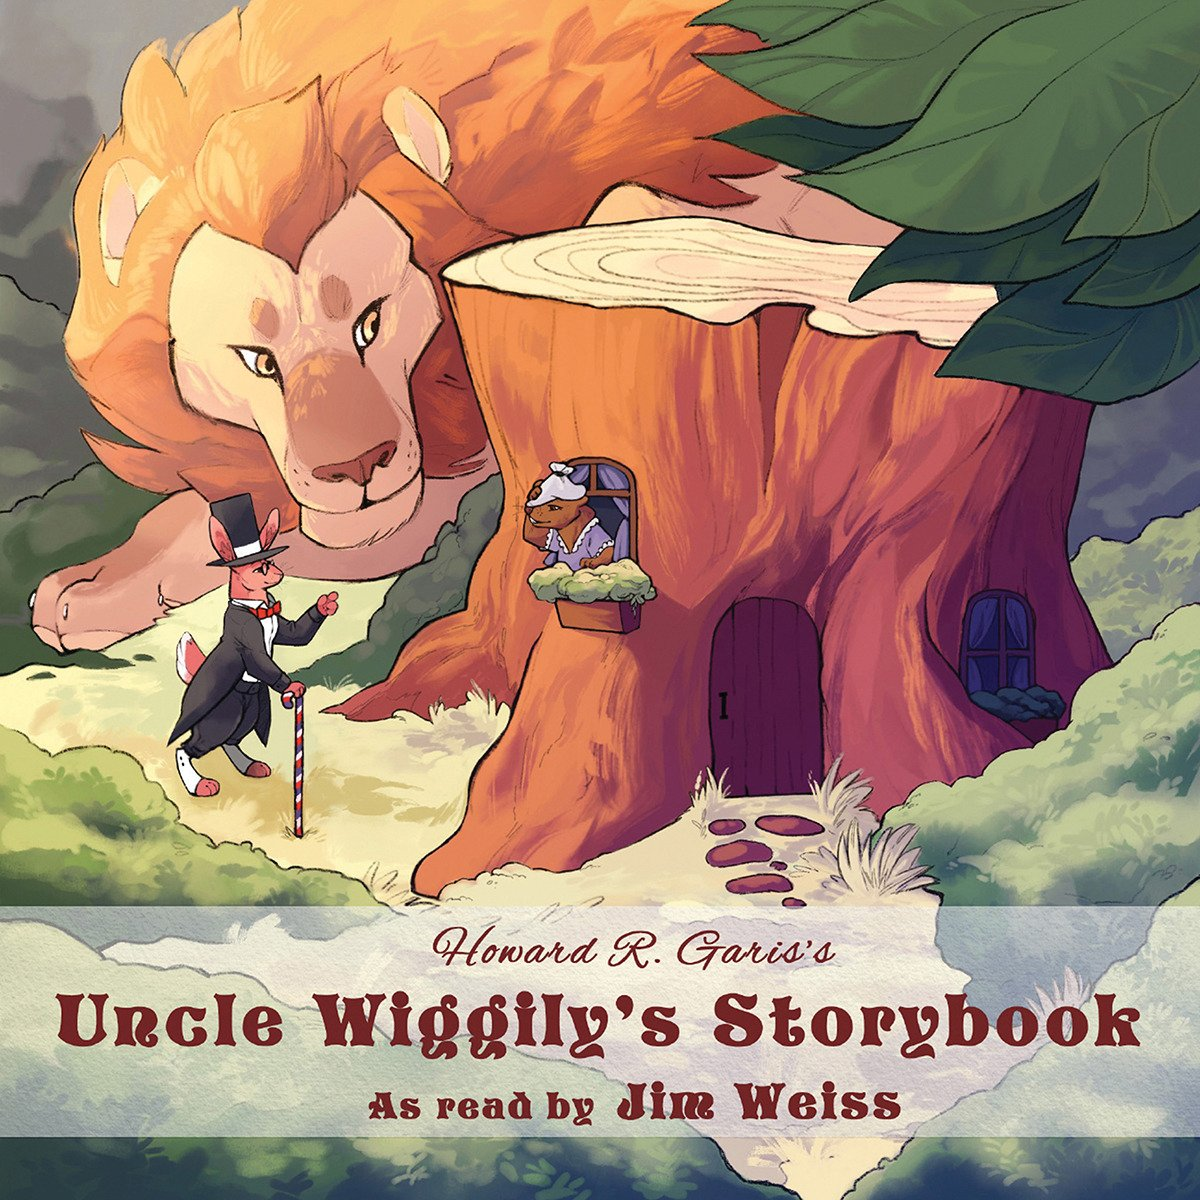 Read Online Uncle Wiggily's Storybook pdf epub